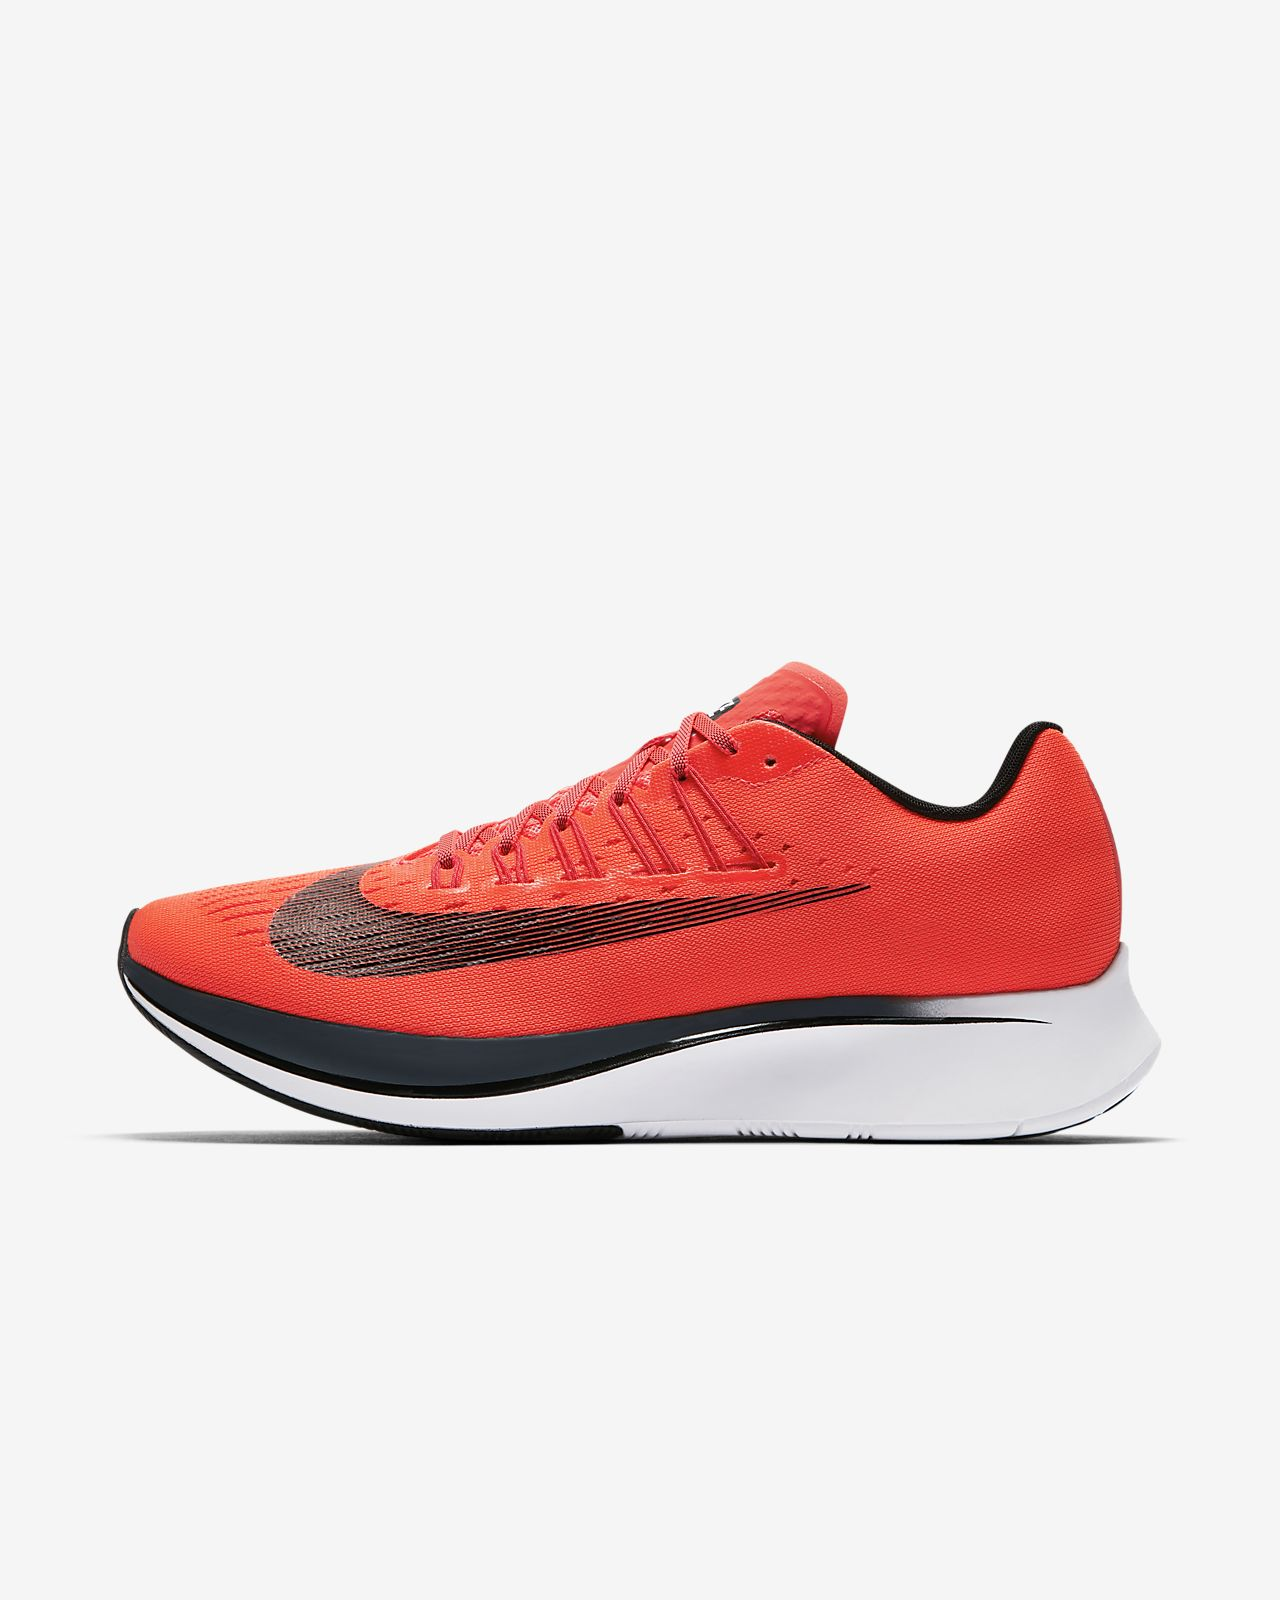 b6b906fd651a Nike Zoom Fly Men s Running Shoe. Nike.com CA